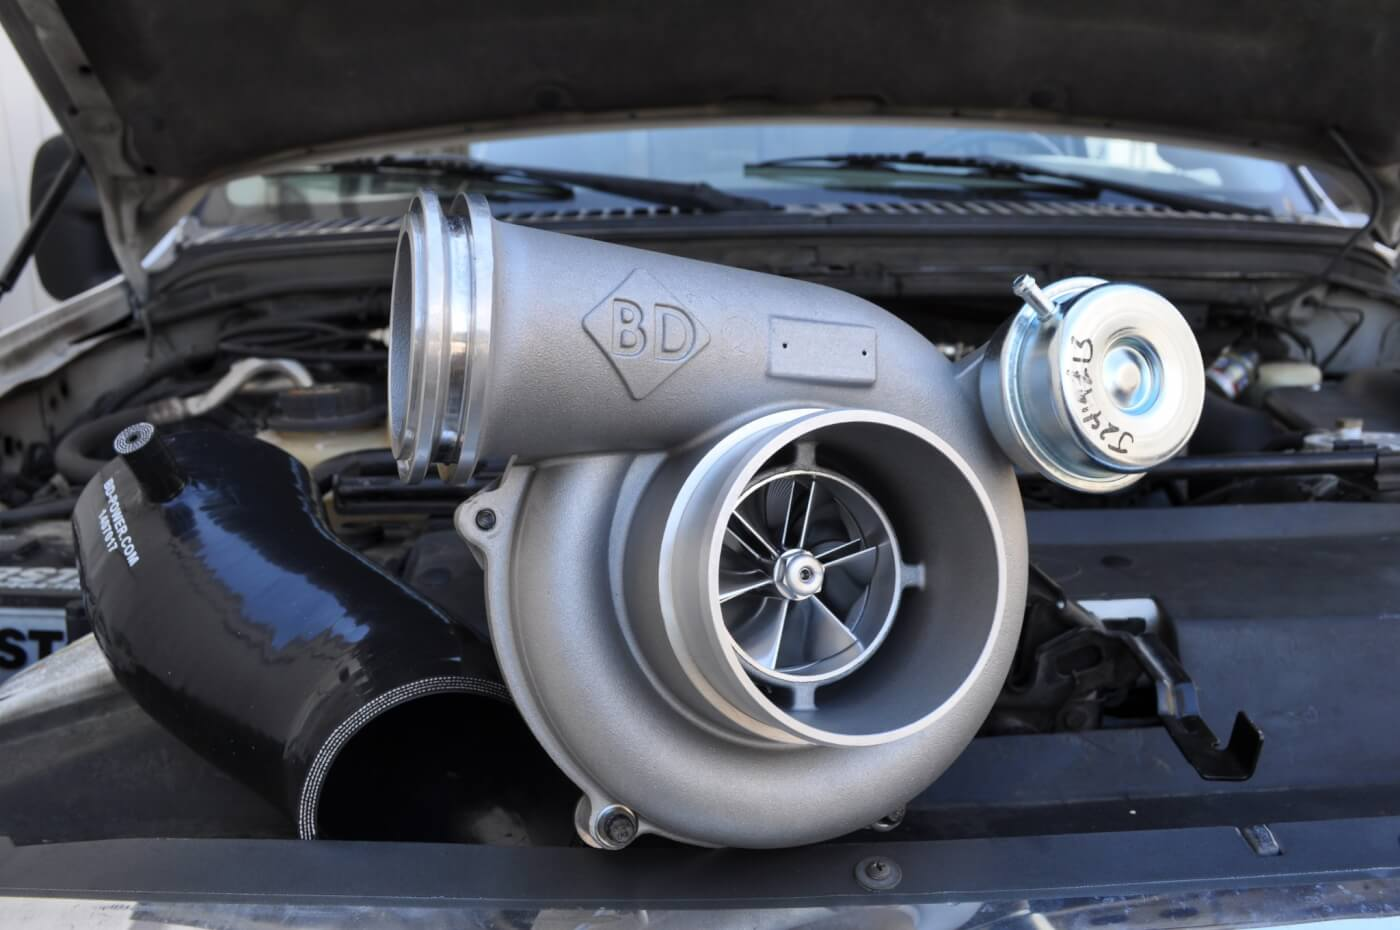 1. BD Diesel Performance's Turbo Thruster II GTP38 for the 7.3L Power Stroke.